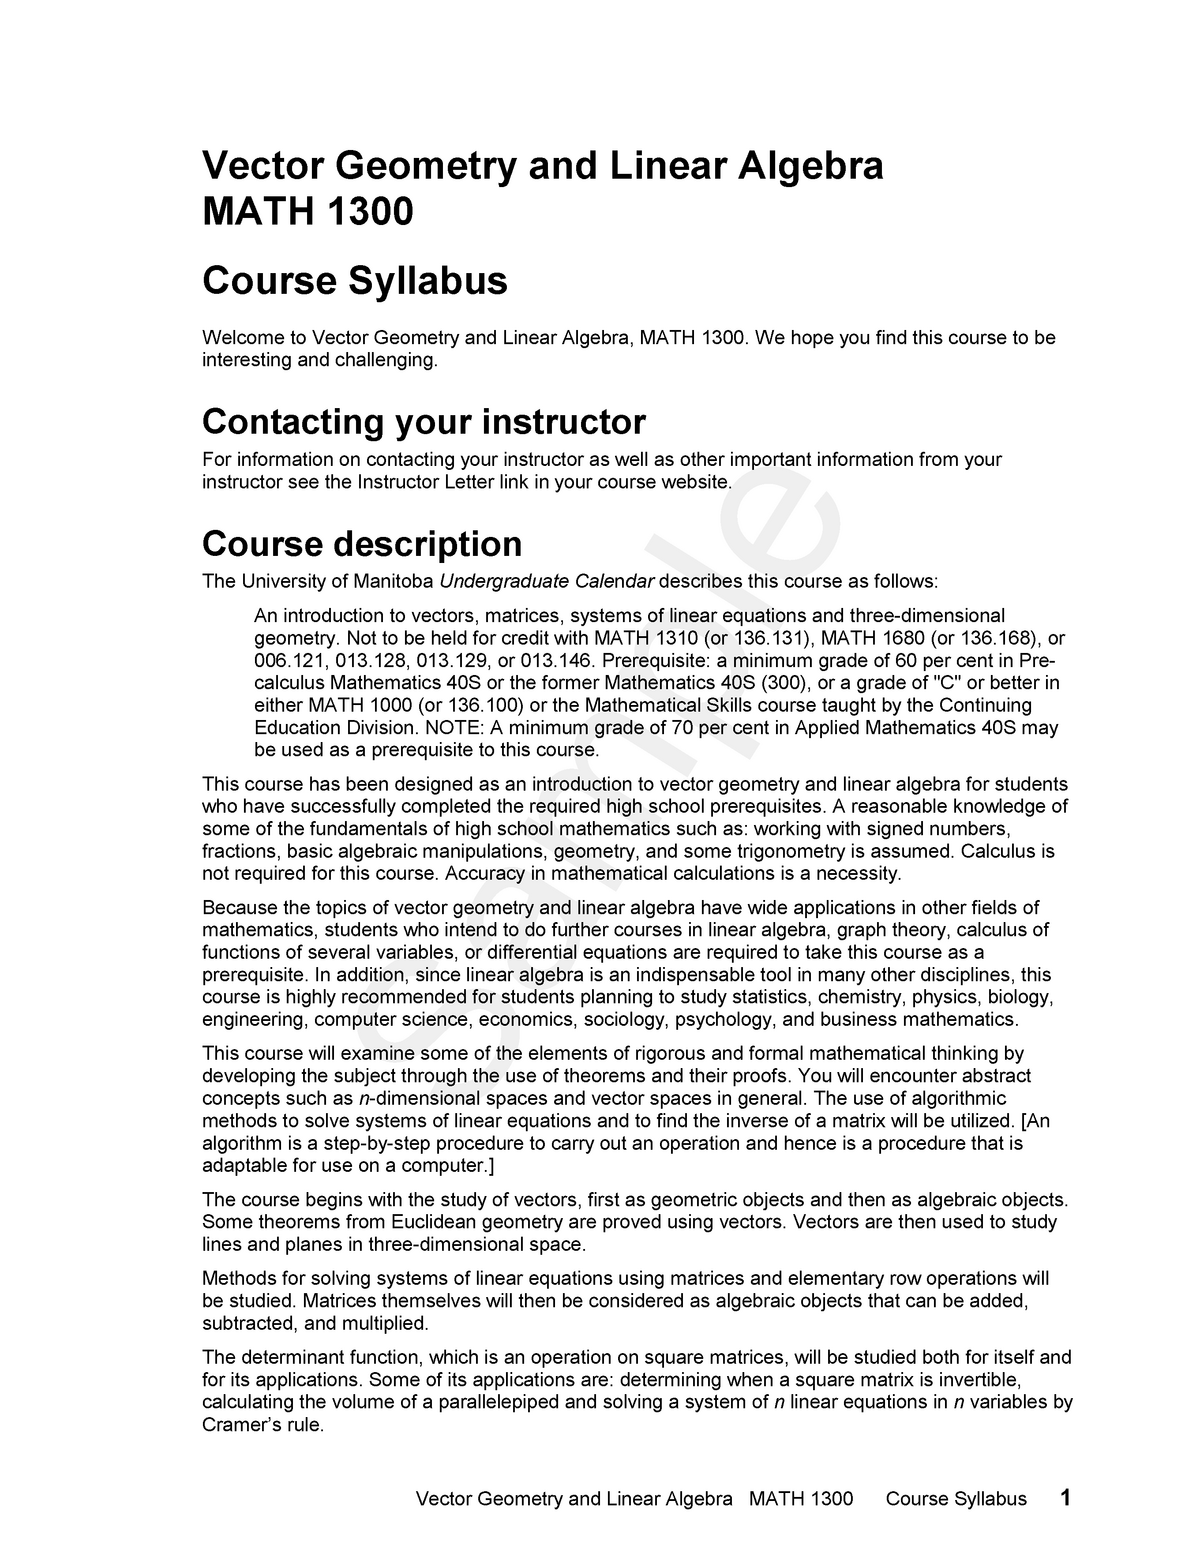 Math1300 syllabus - MATH 1300: Vector Geometry And Linear Algebra